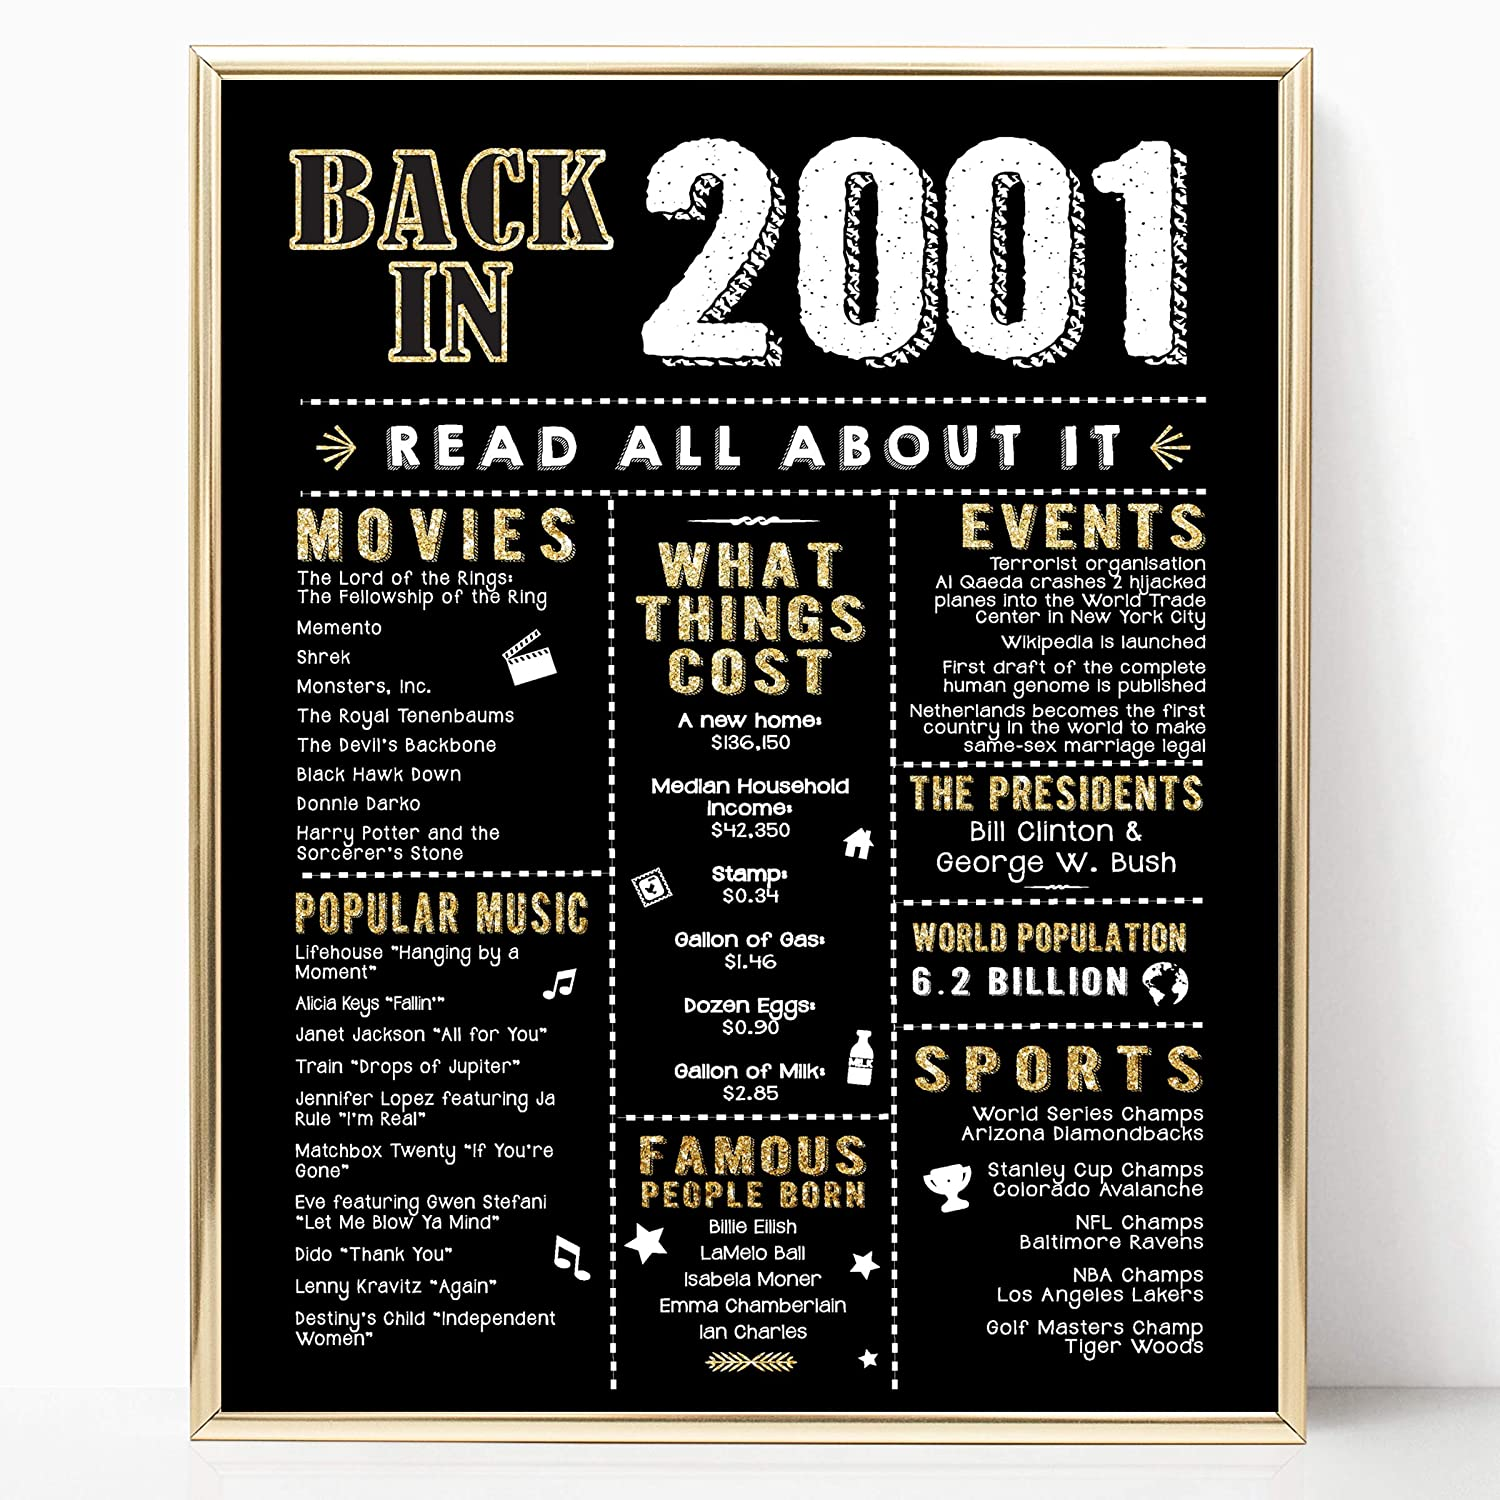 71401c4f874 Katie Doodle 18th Birthday Decorations Gifts for Girls Boys | Includes 8x10  Back-in-2001 Sign [Unframed], BD018, Black/Gold